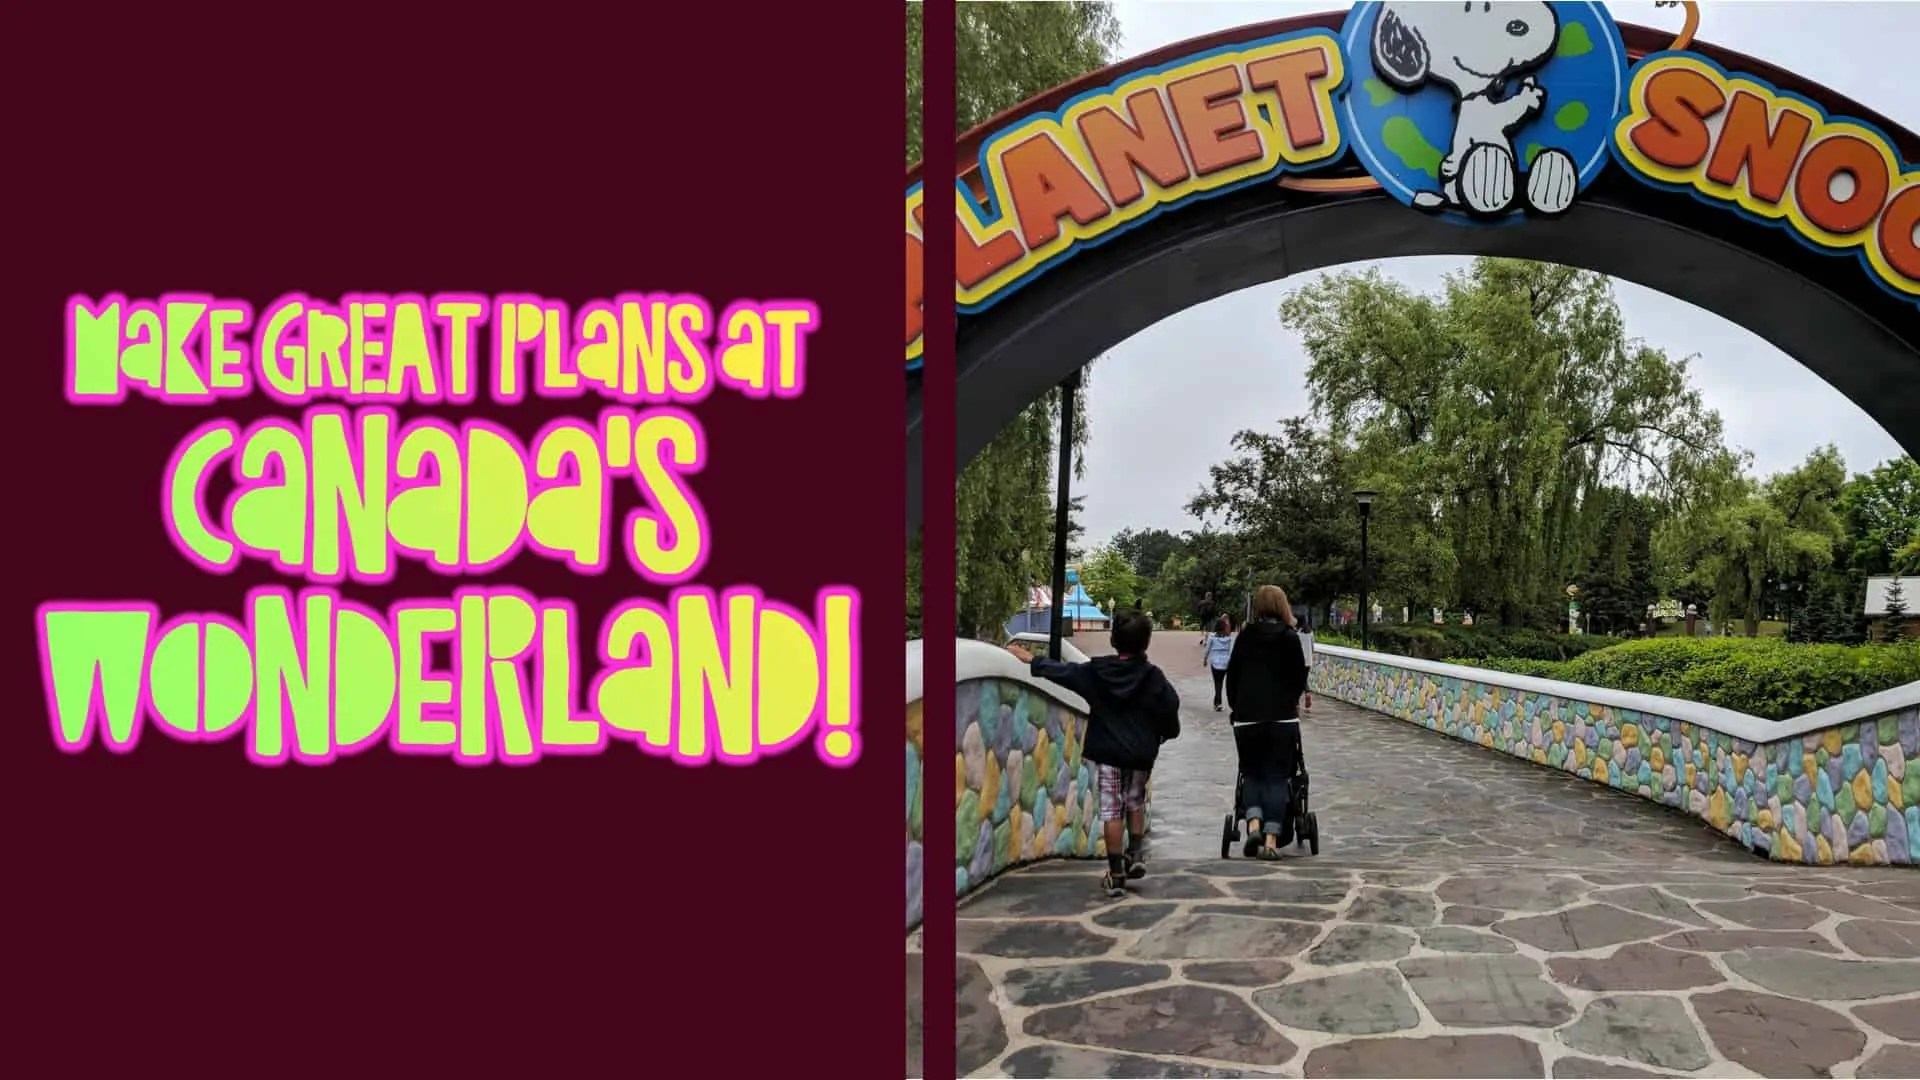 Make GREAT Plans at Canada's Wonderland! (Featured Image)